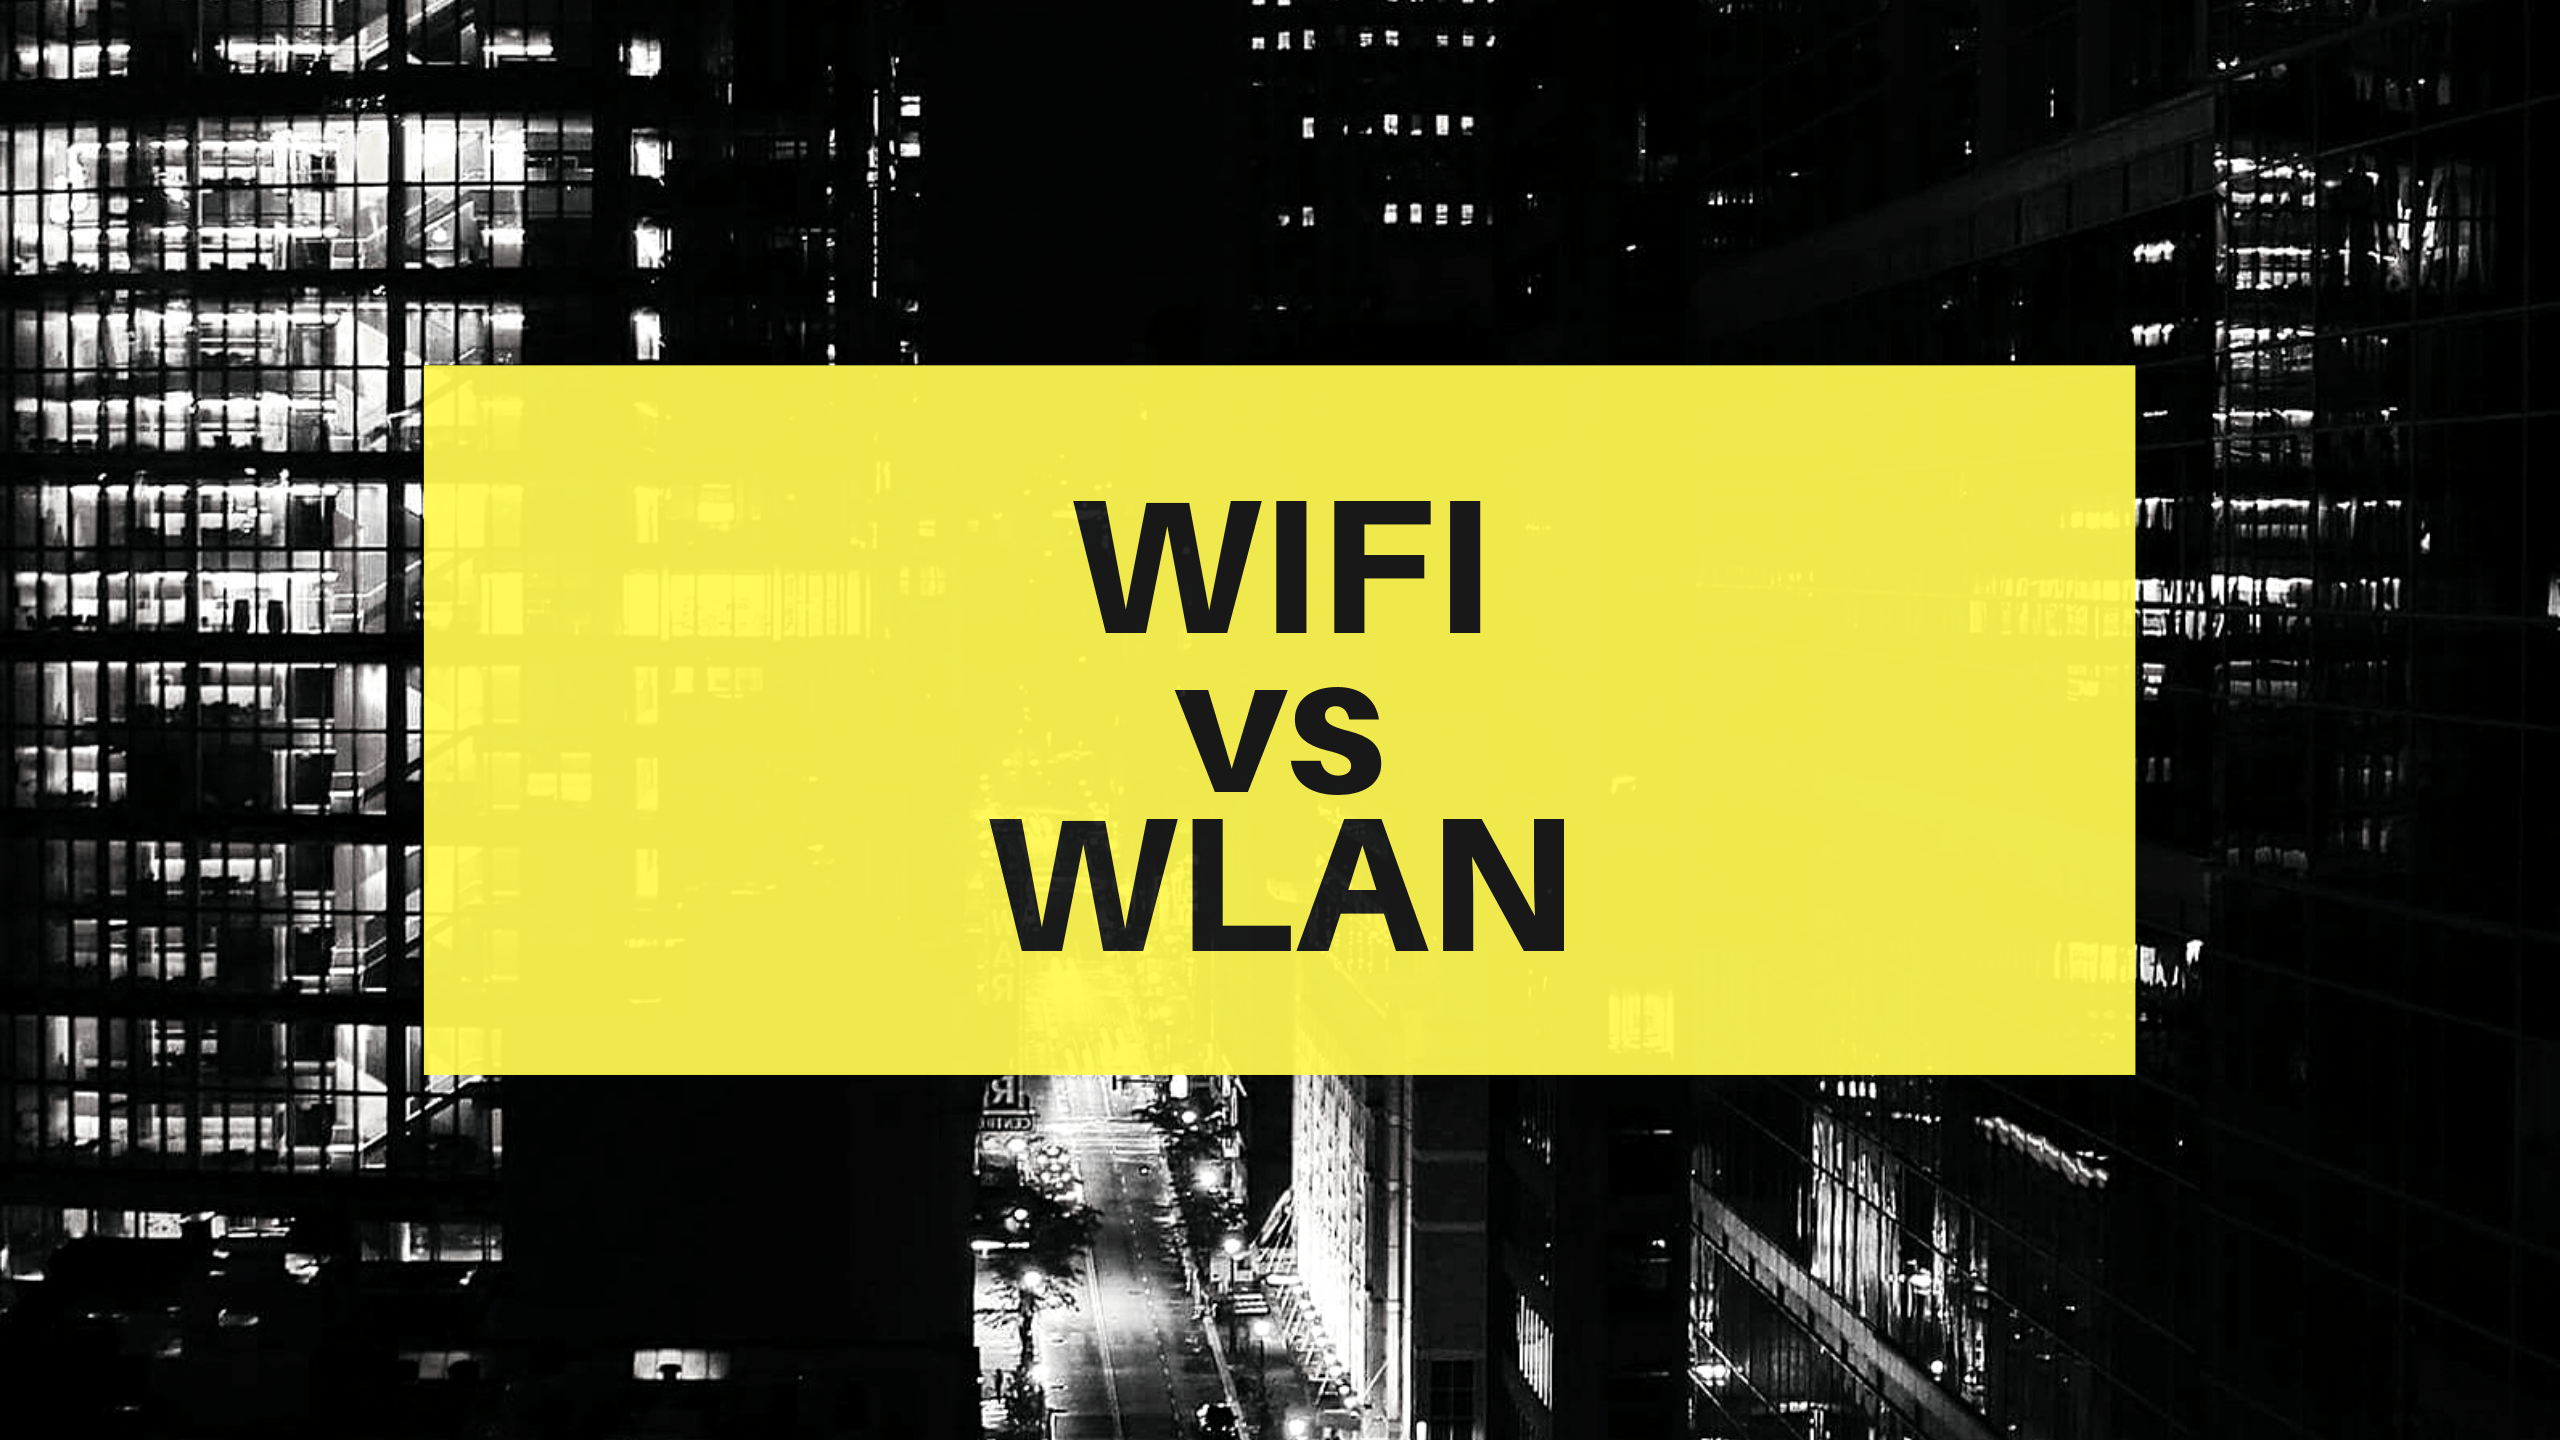 wlan vs wifi